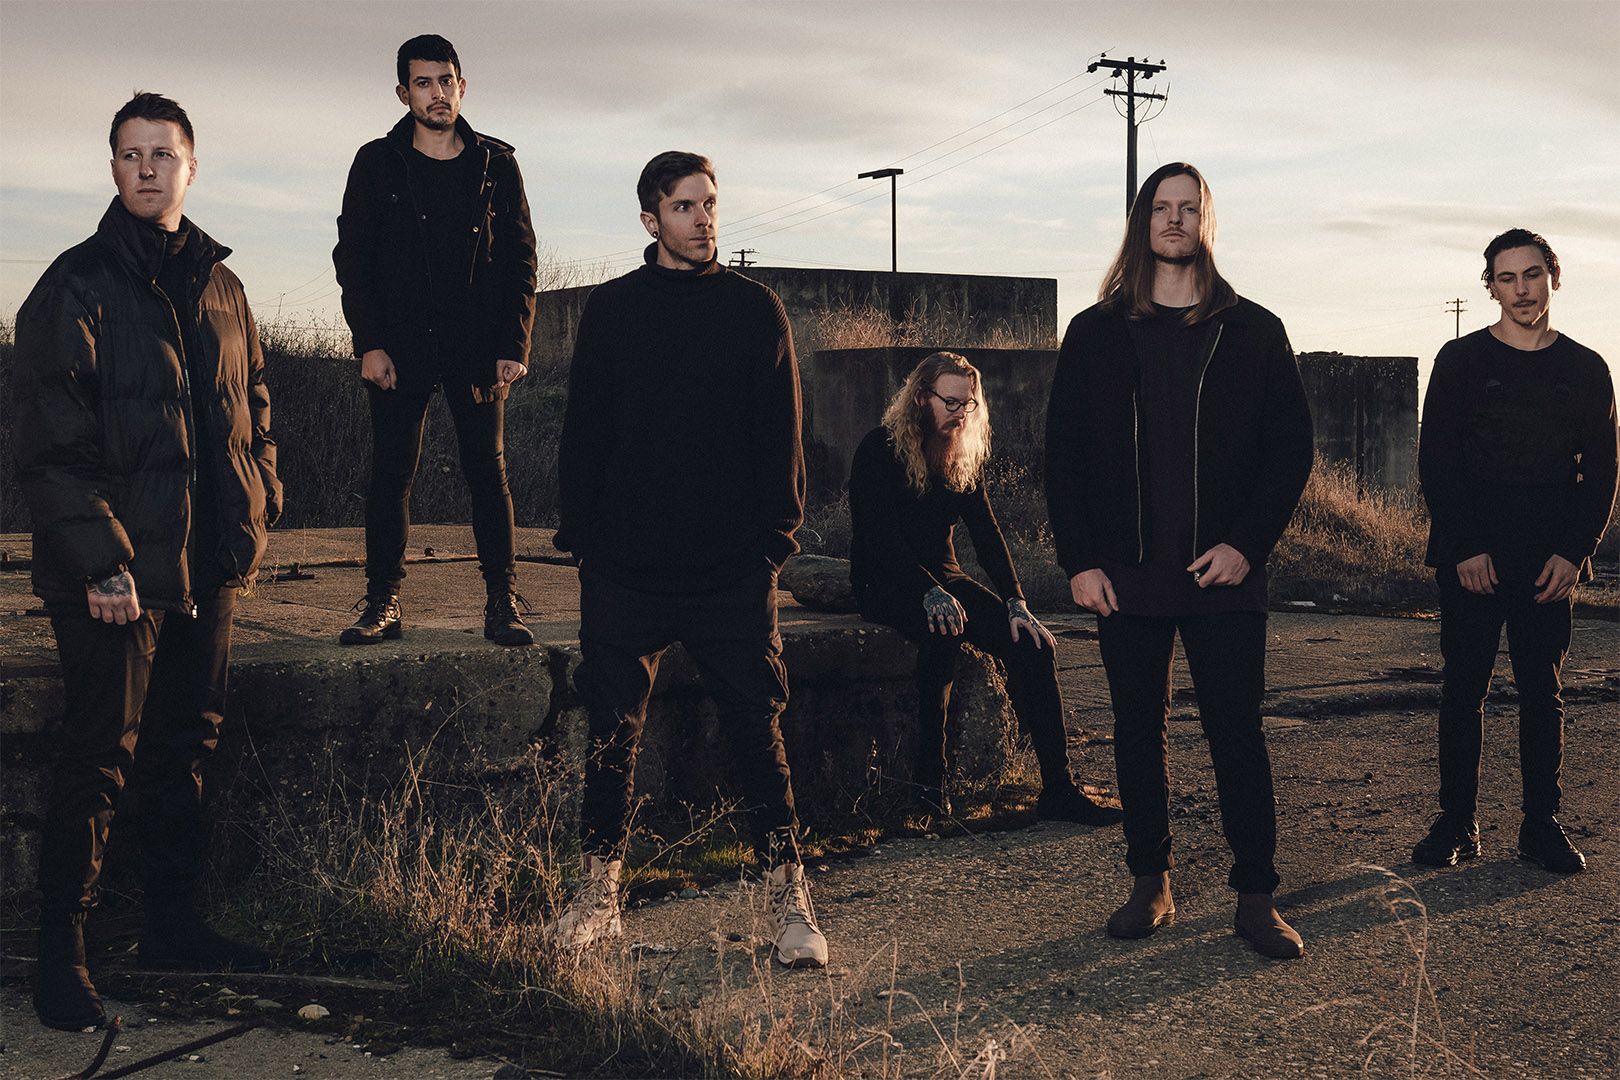 """KINGDOM OF GIANTS RELEASE NEW SINGLE """"BLUE DREAM"""" FEATURING MICHAEL BARR"""